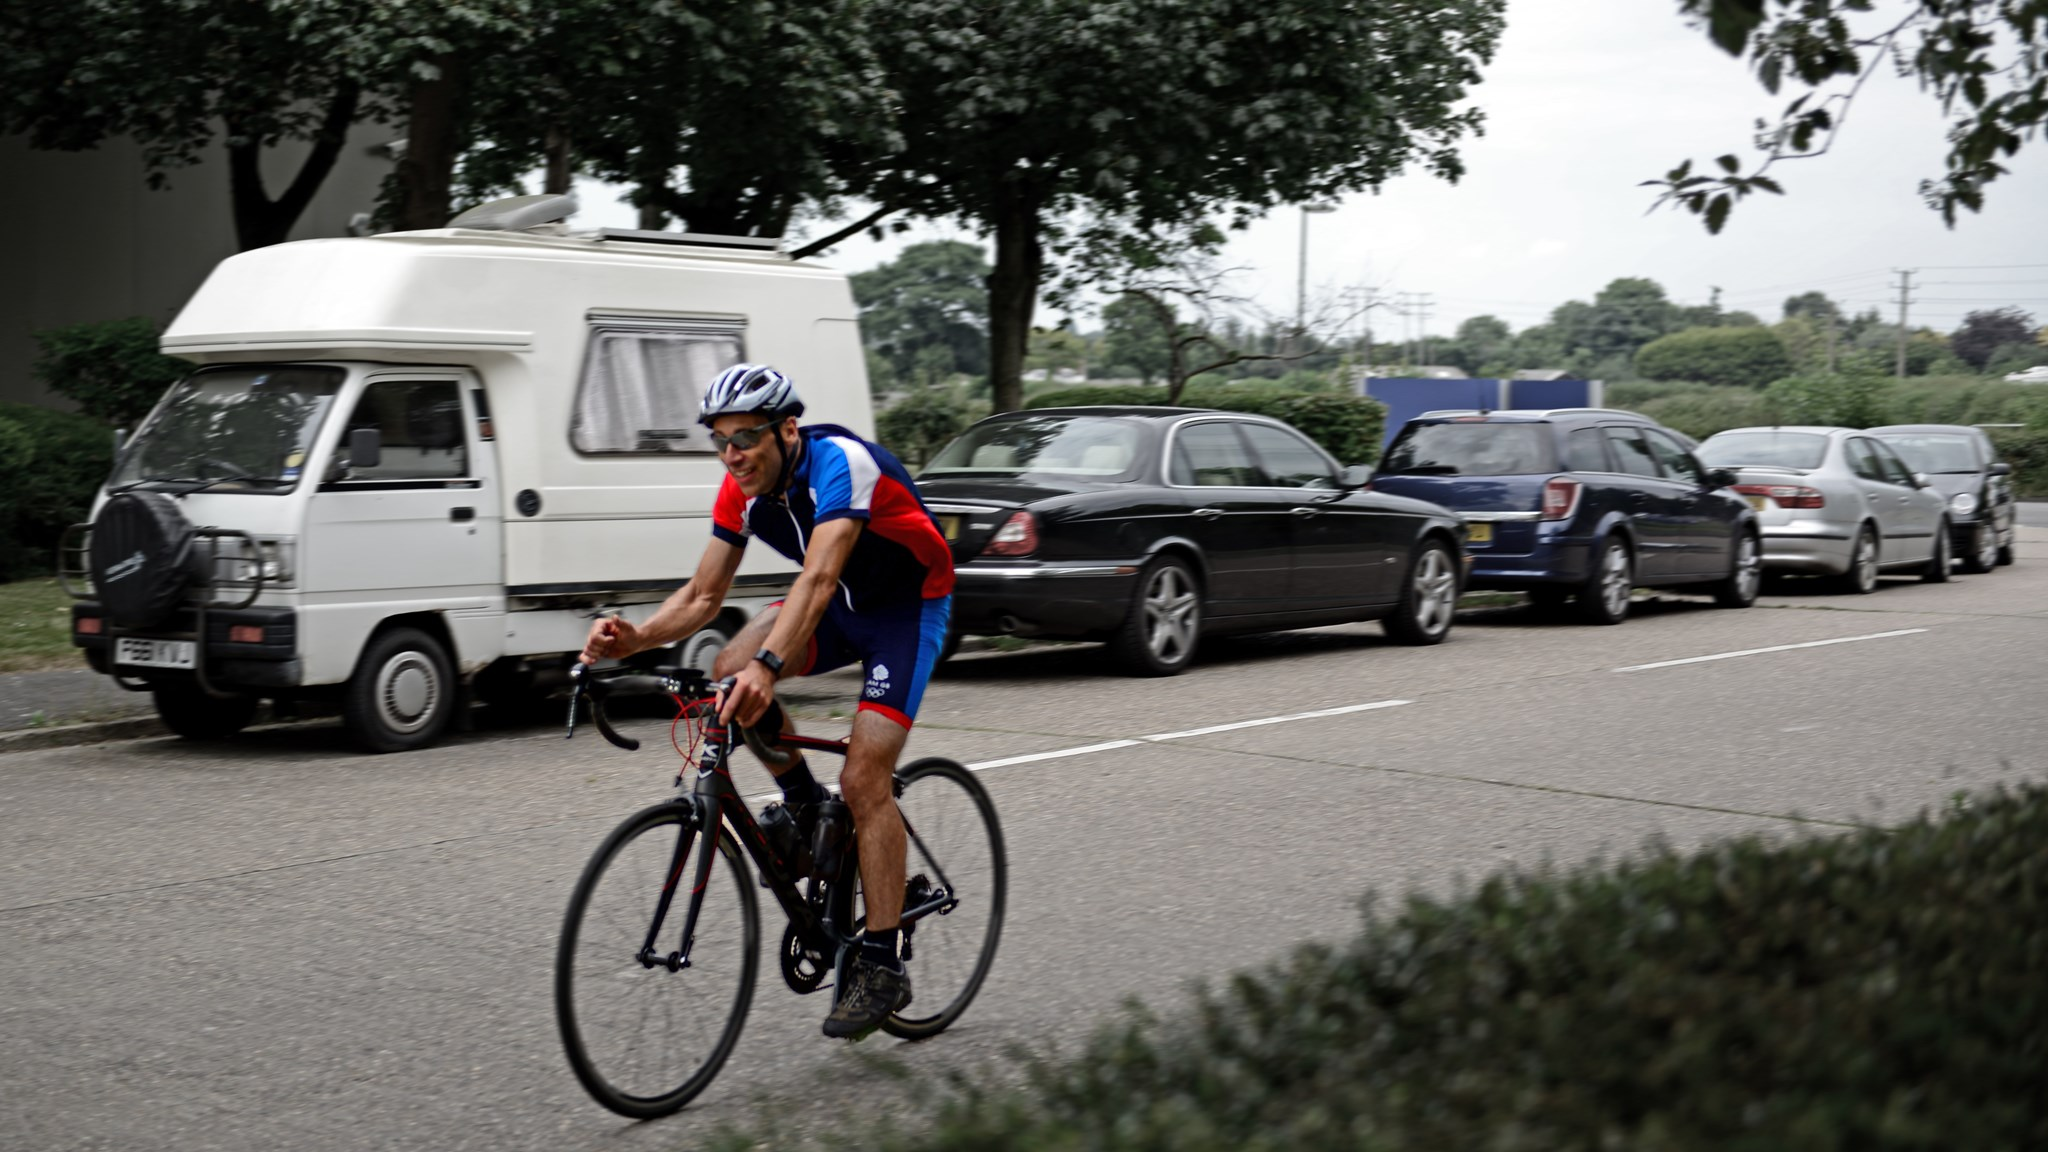 Southco Worcester to Farnham Bike Ride 2016.  One of the most driven riders of the day...